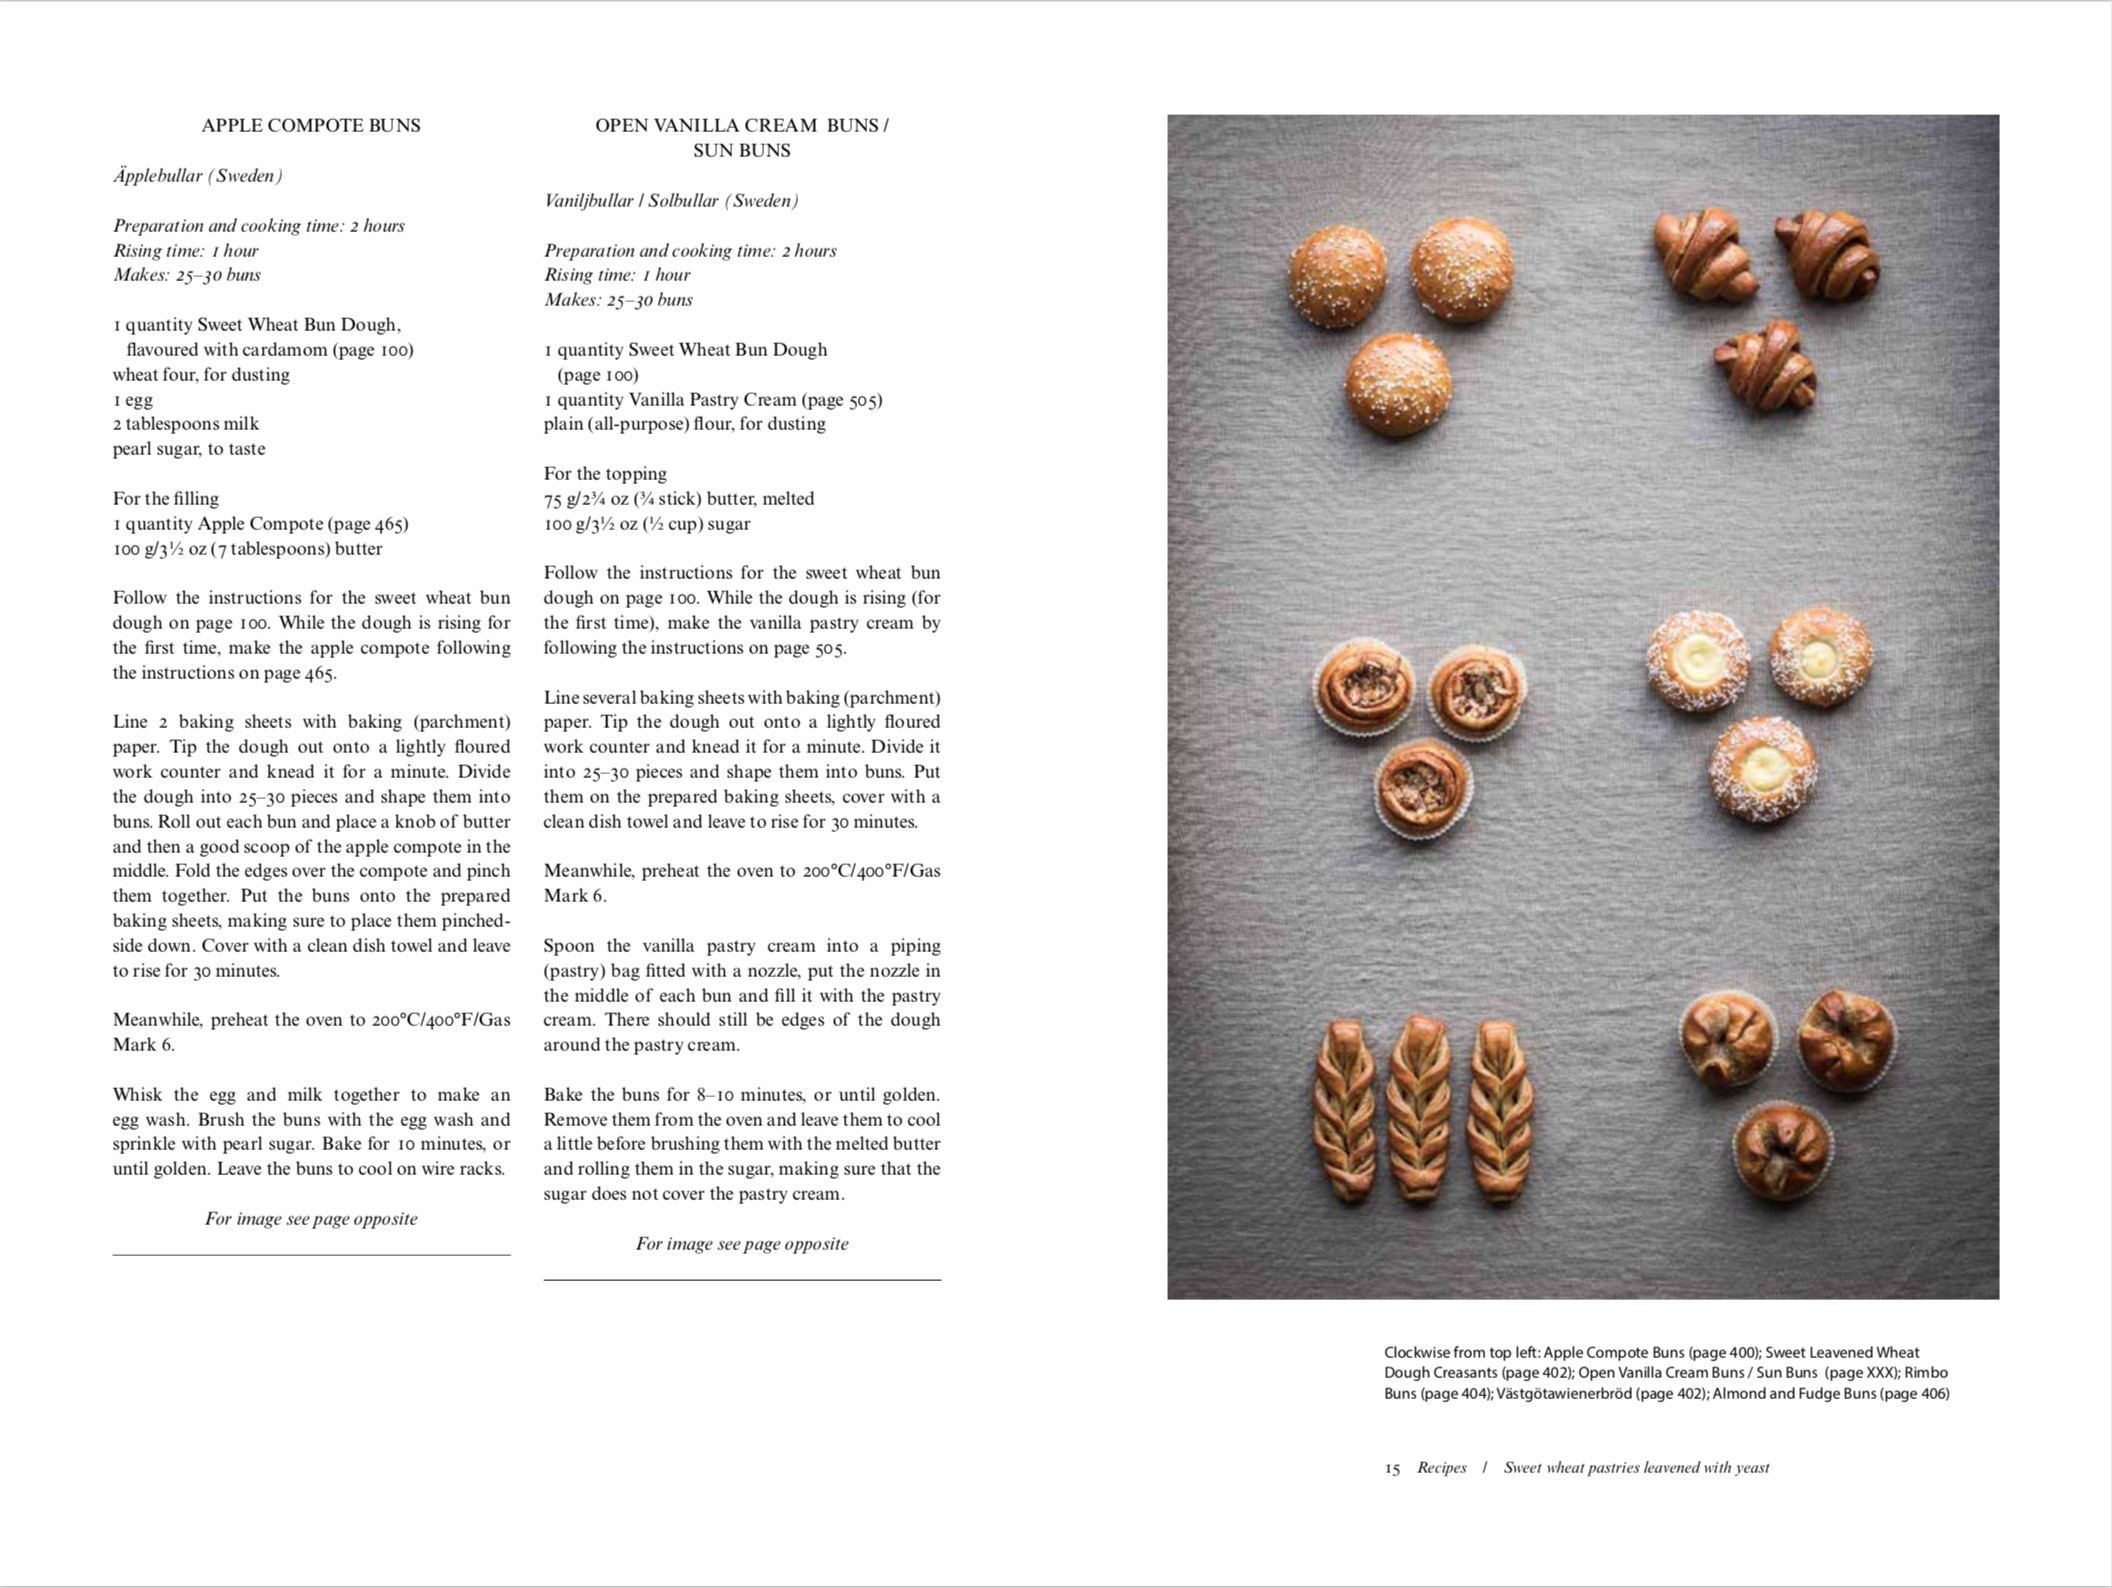 By Magnus Nilsson from The Nordic Baking Book copyright Phaidon 2018